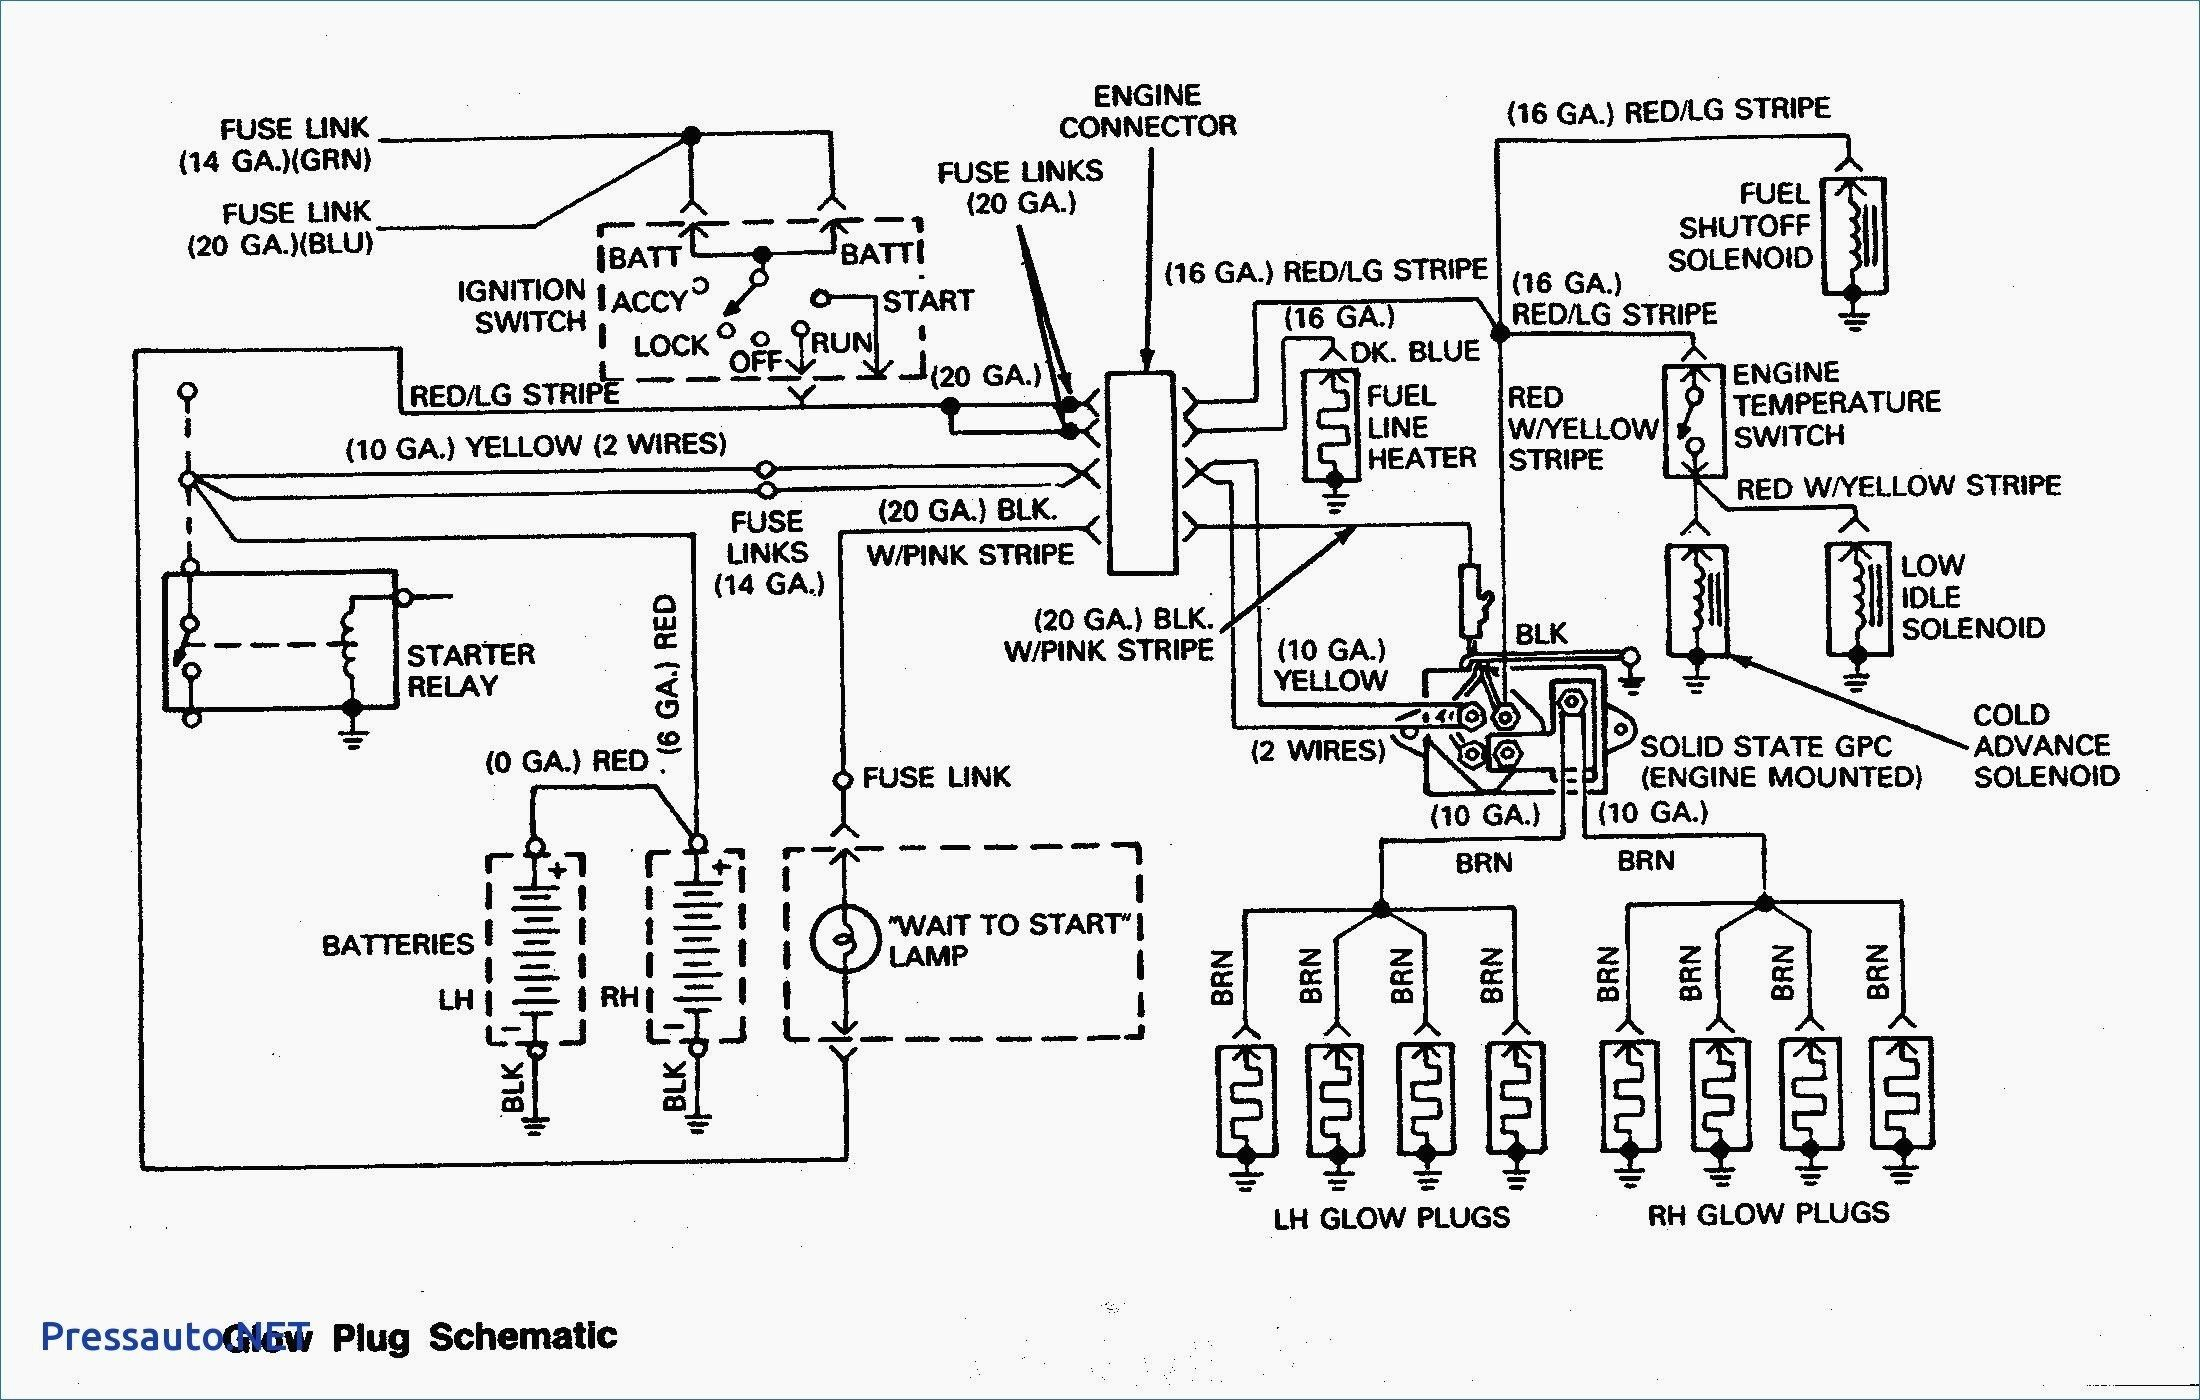 6 duramax wiring schematic schematic diagram database engine diagram of 02 gmc 6 0 duramax [ 2200 x 1400 Pixel ]